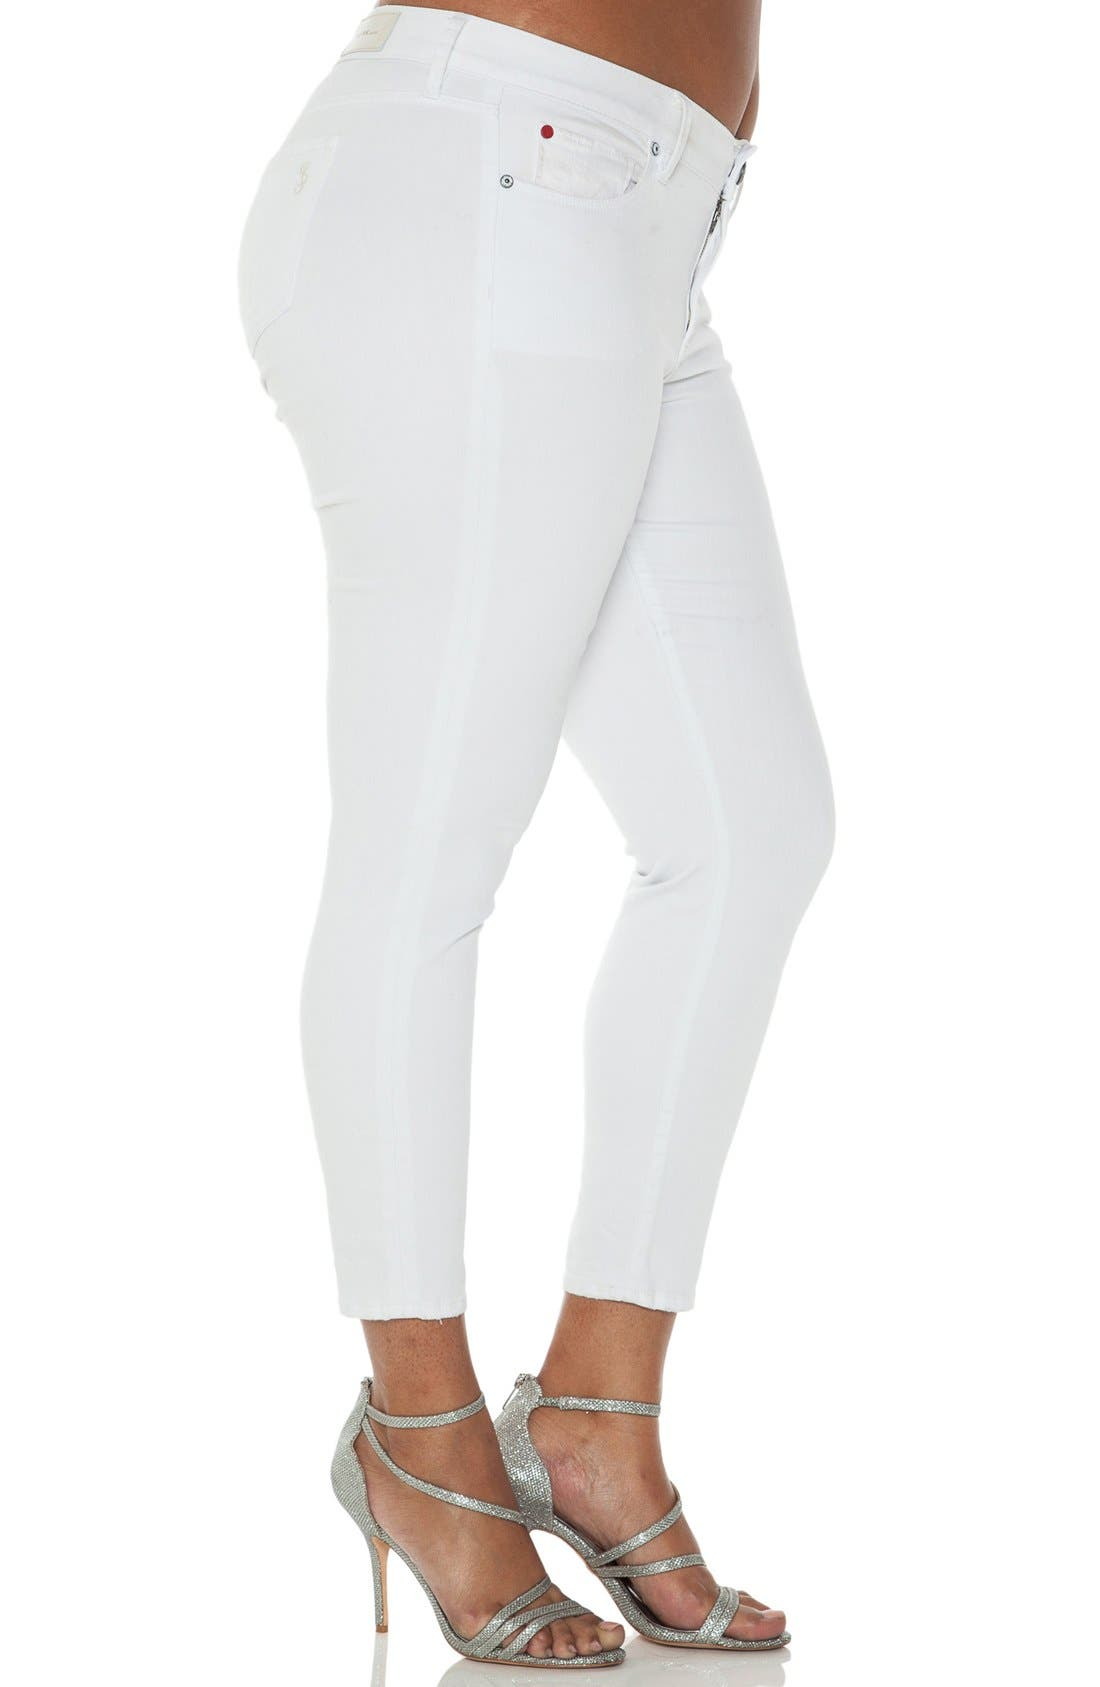 Alternate Image 3  - SLINK Jeans Stretch Ankle Skinny Jeans (Optical White) (Plus Size)